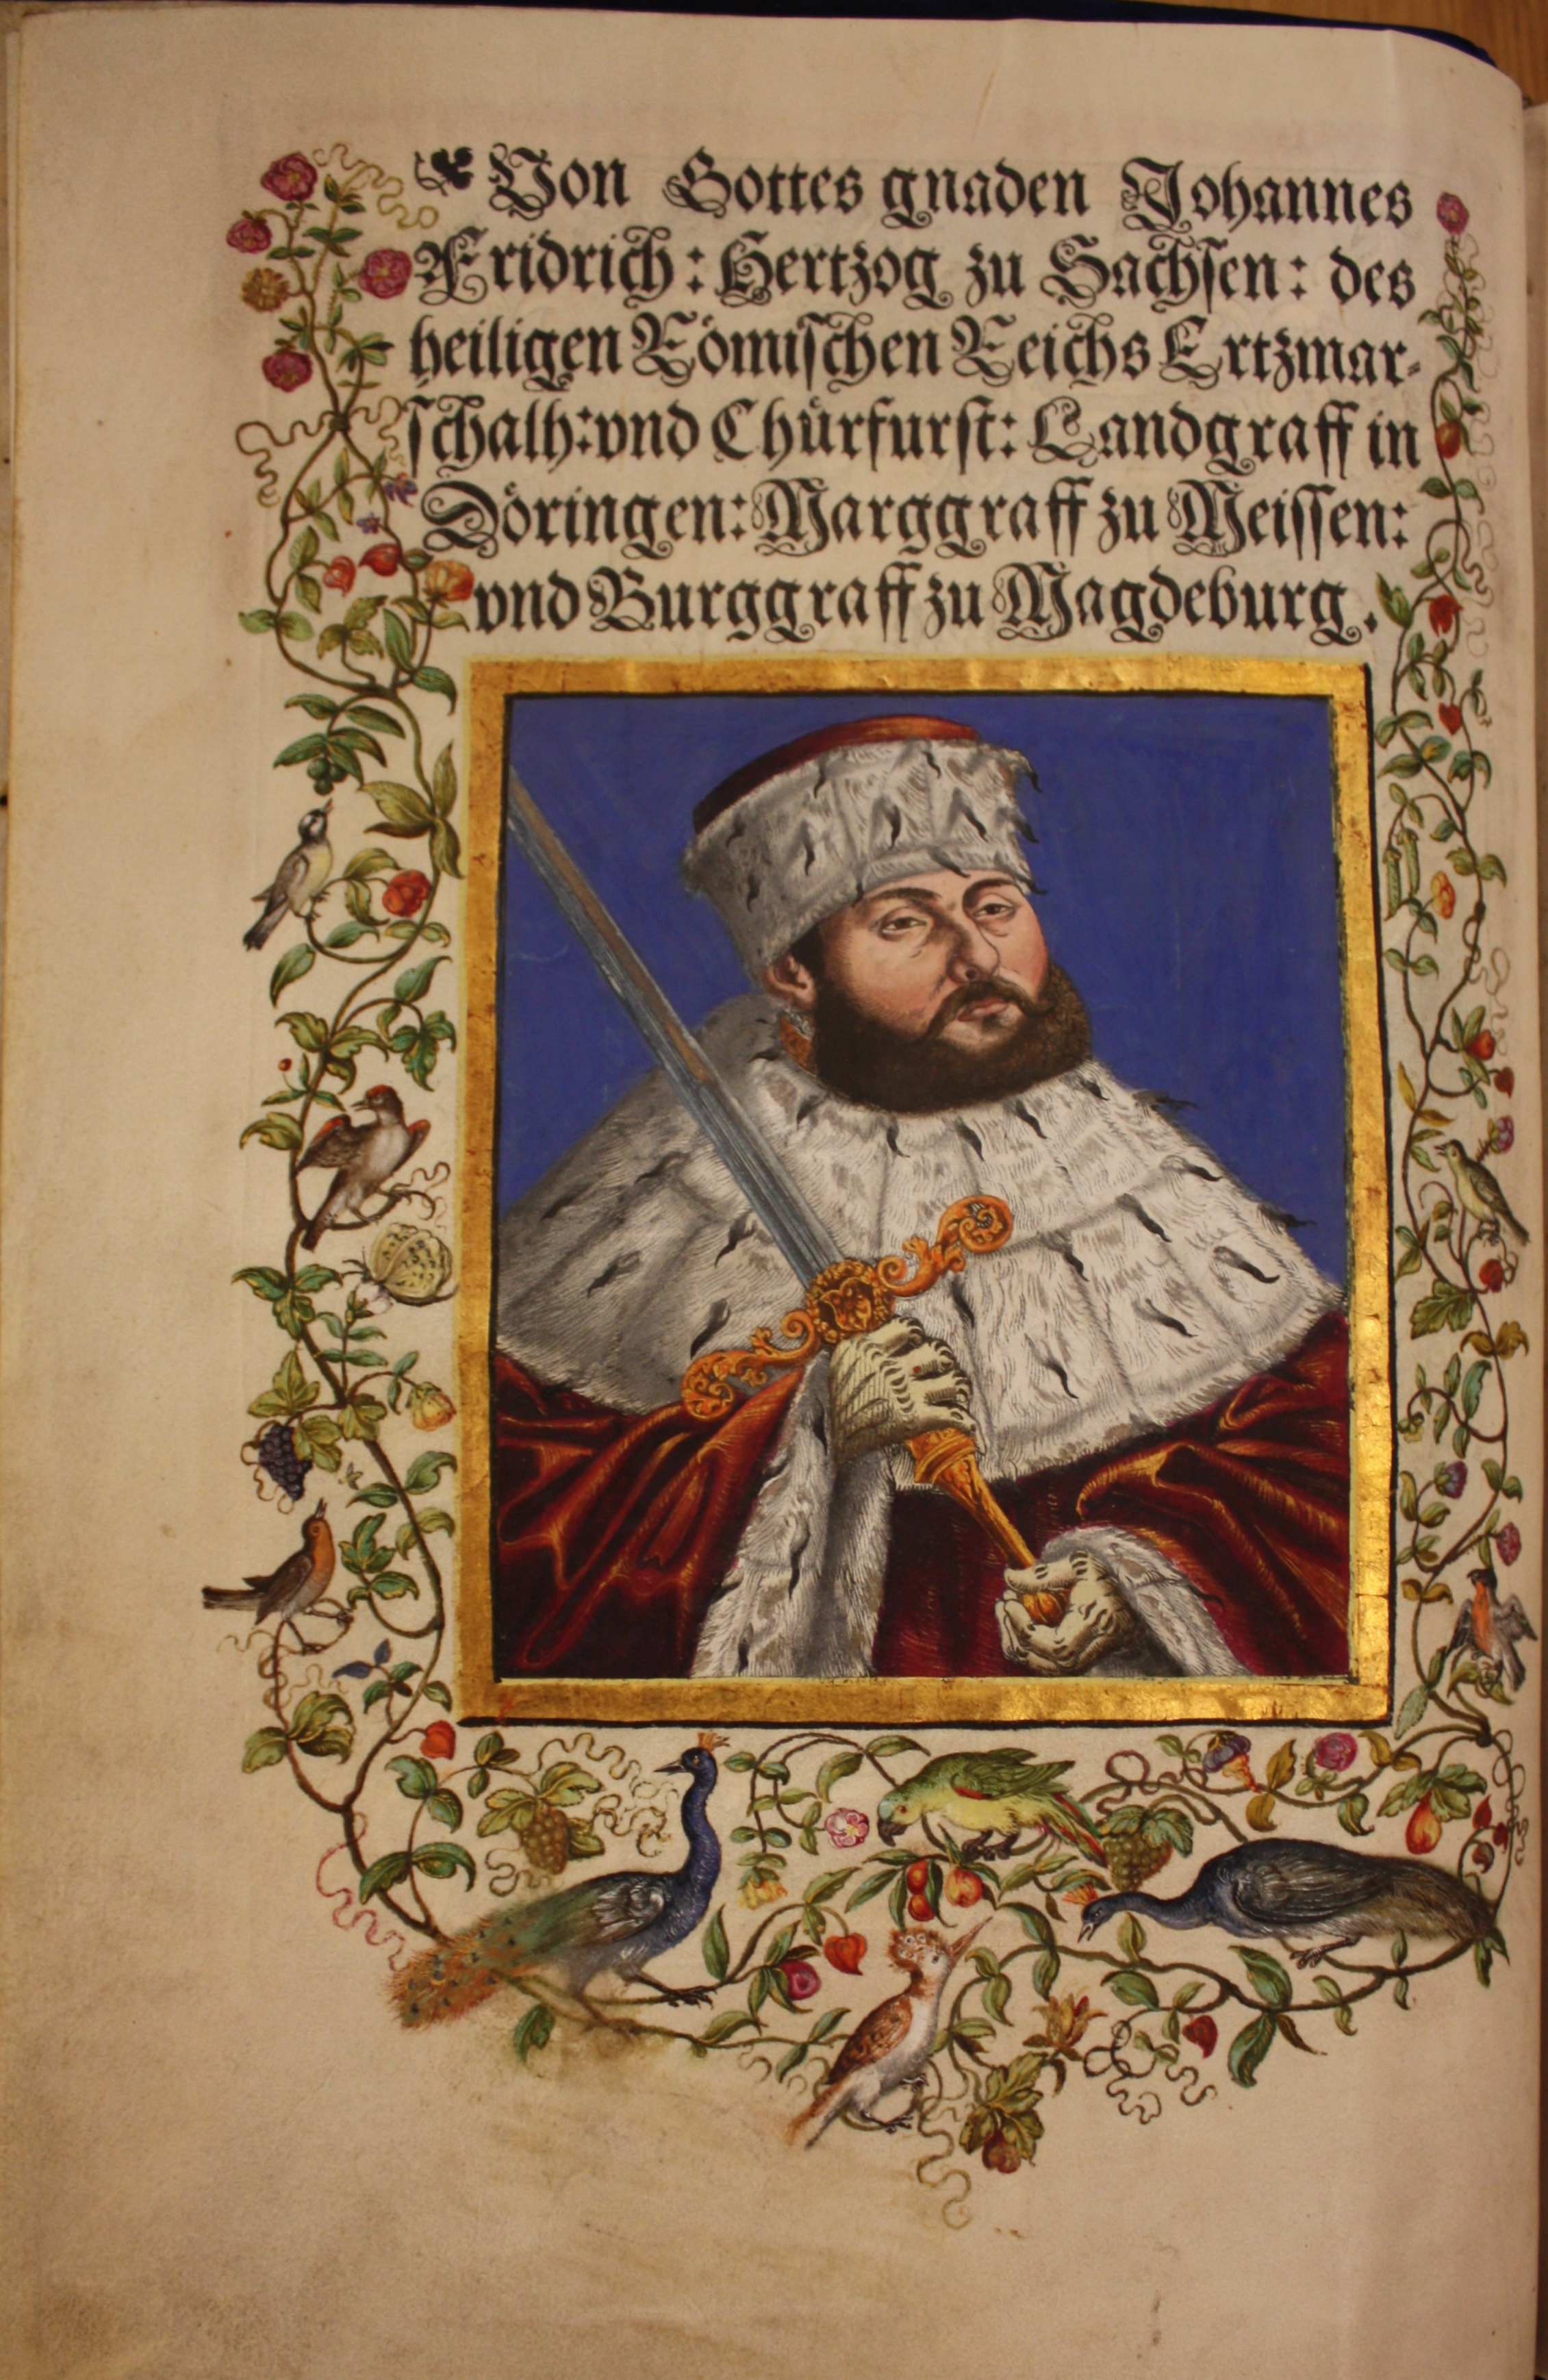 Hand coloured frontispiece from Luther Bible showing Elector Johann Frederick I